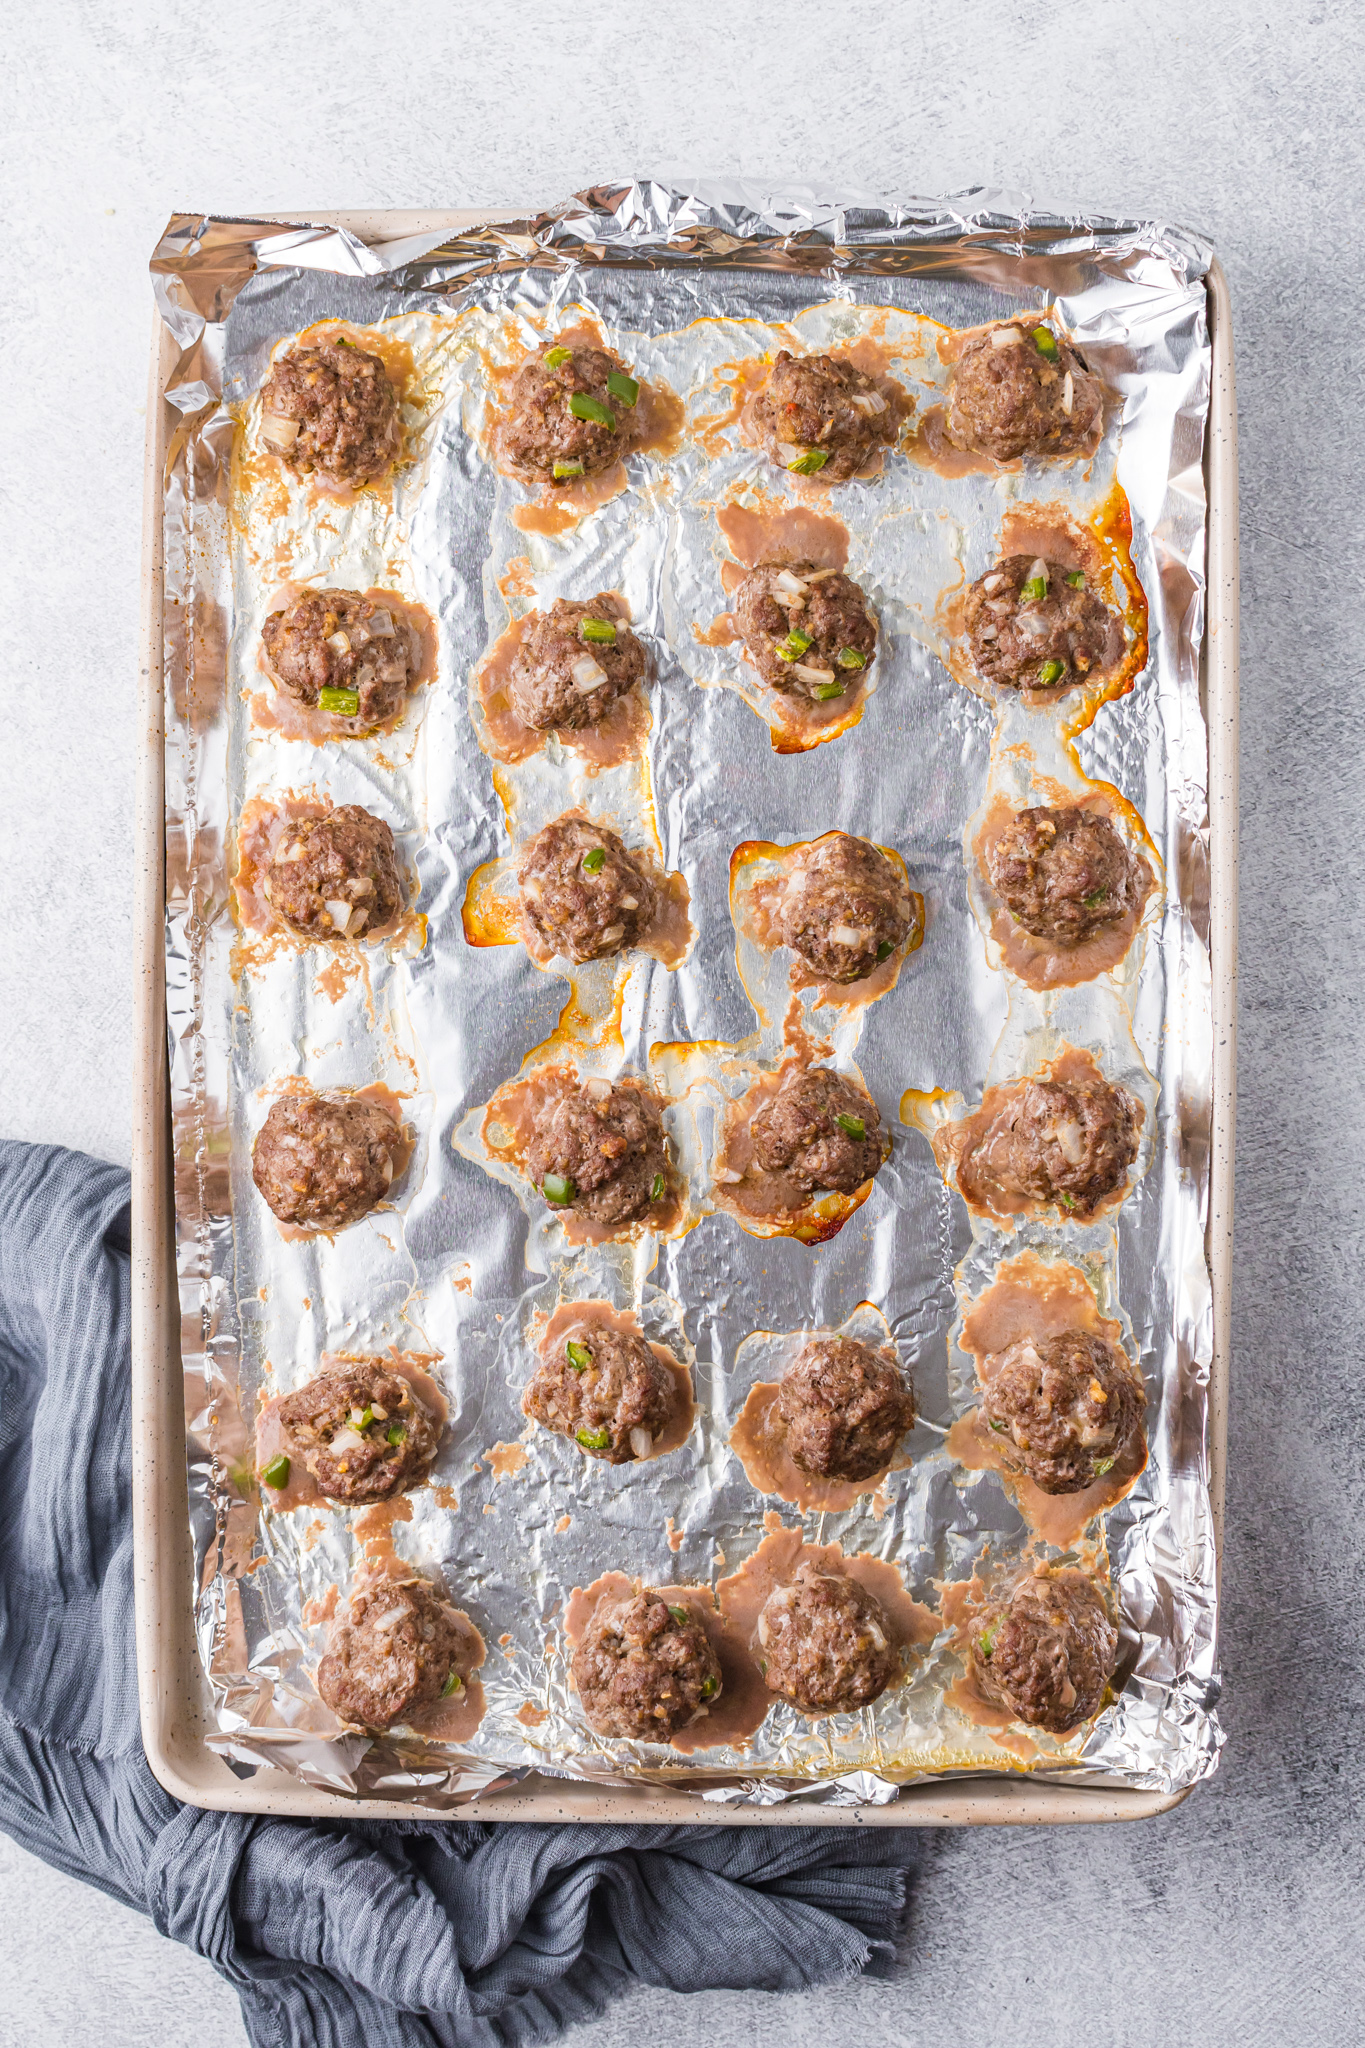 Curry Meatballs Recipe on a baking sheet.